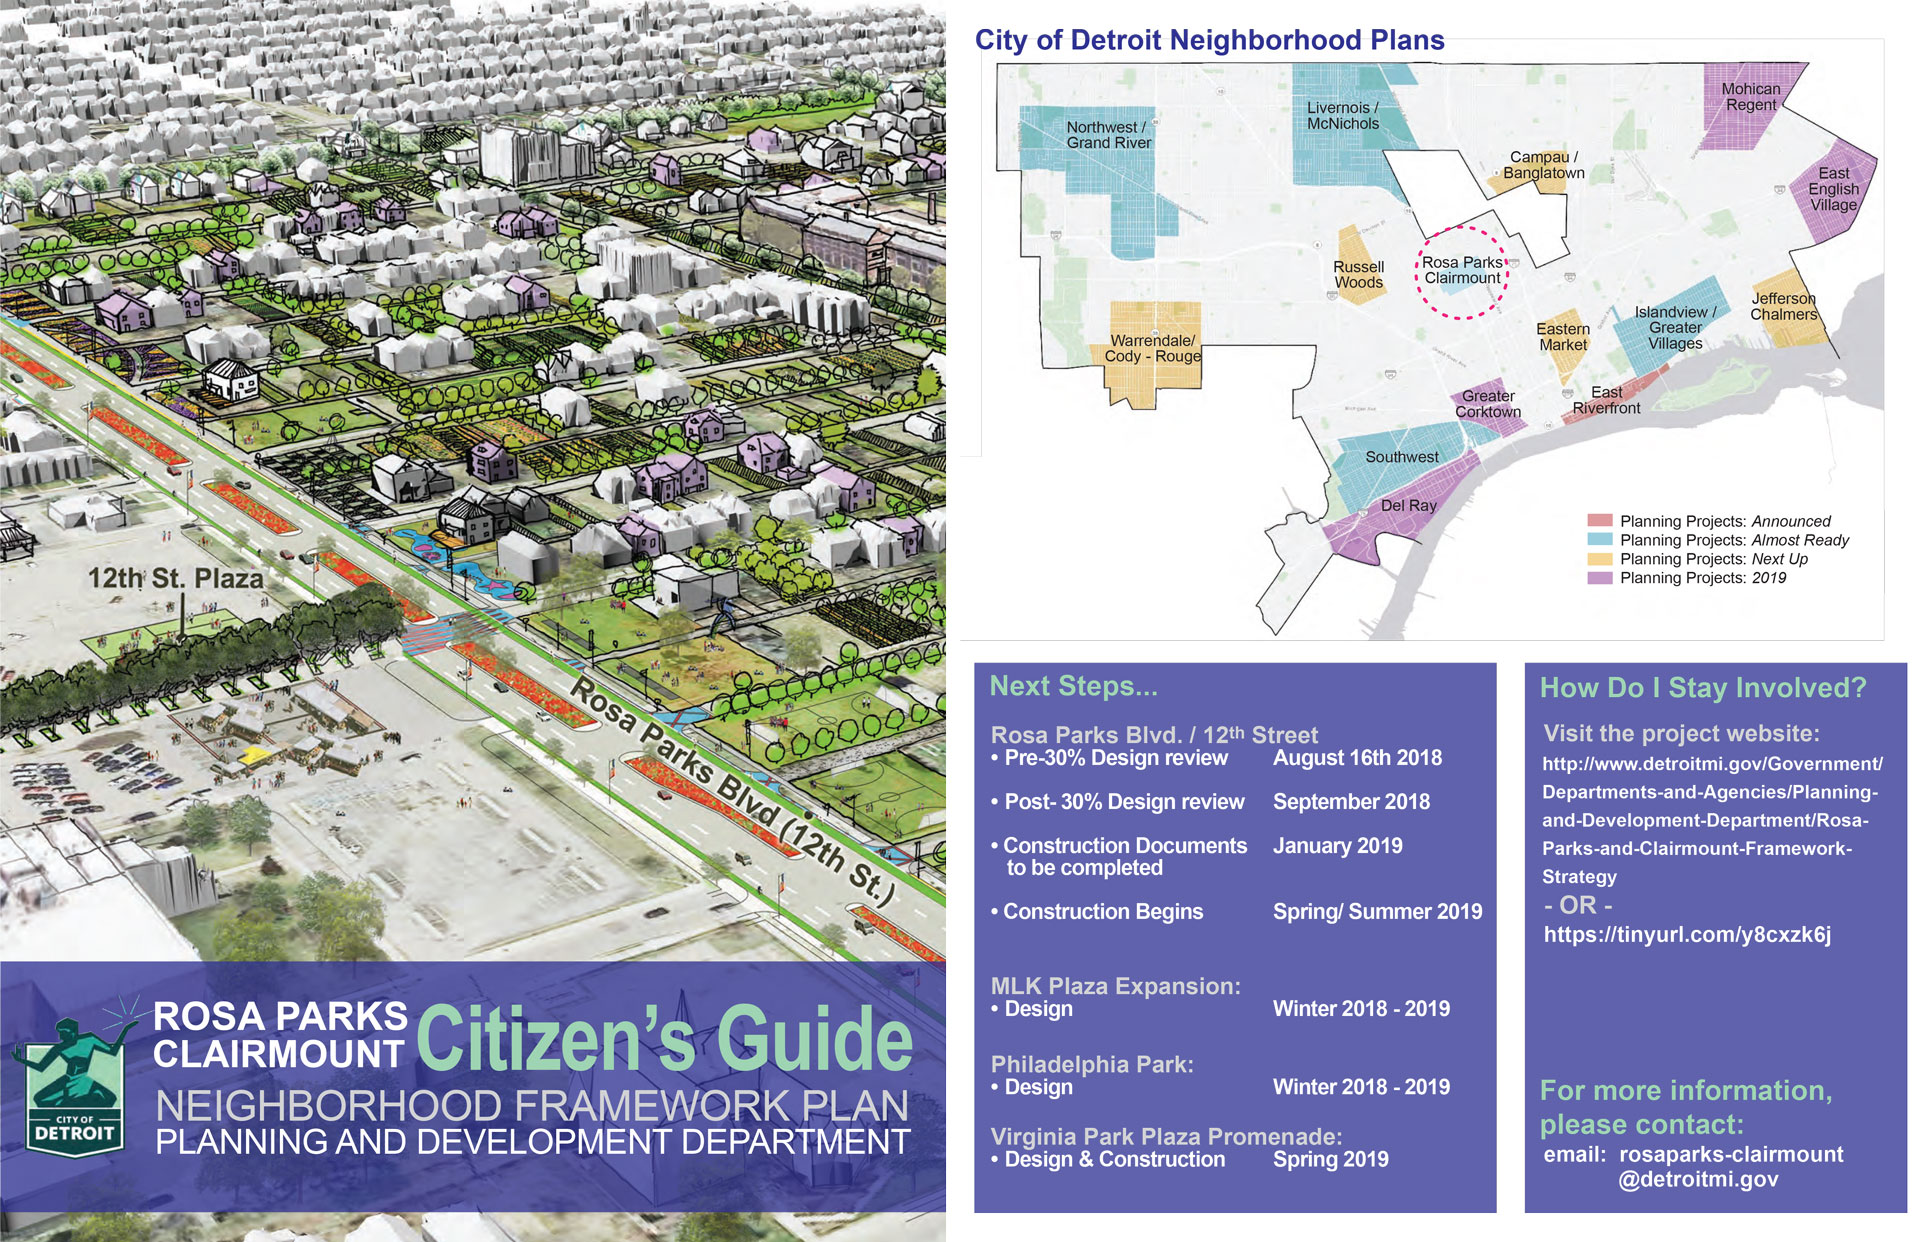 Rosa Parks and Clairmount Citizen Guide